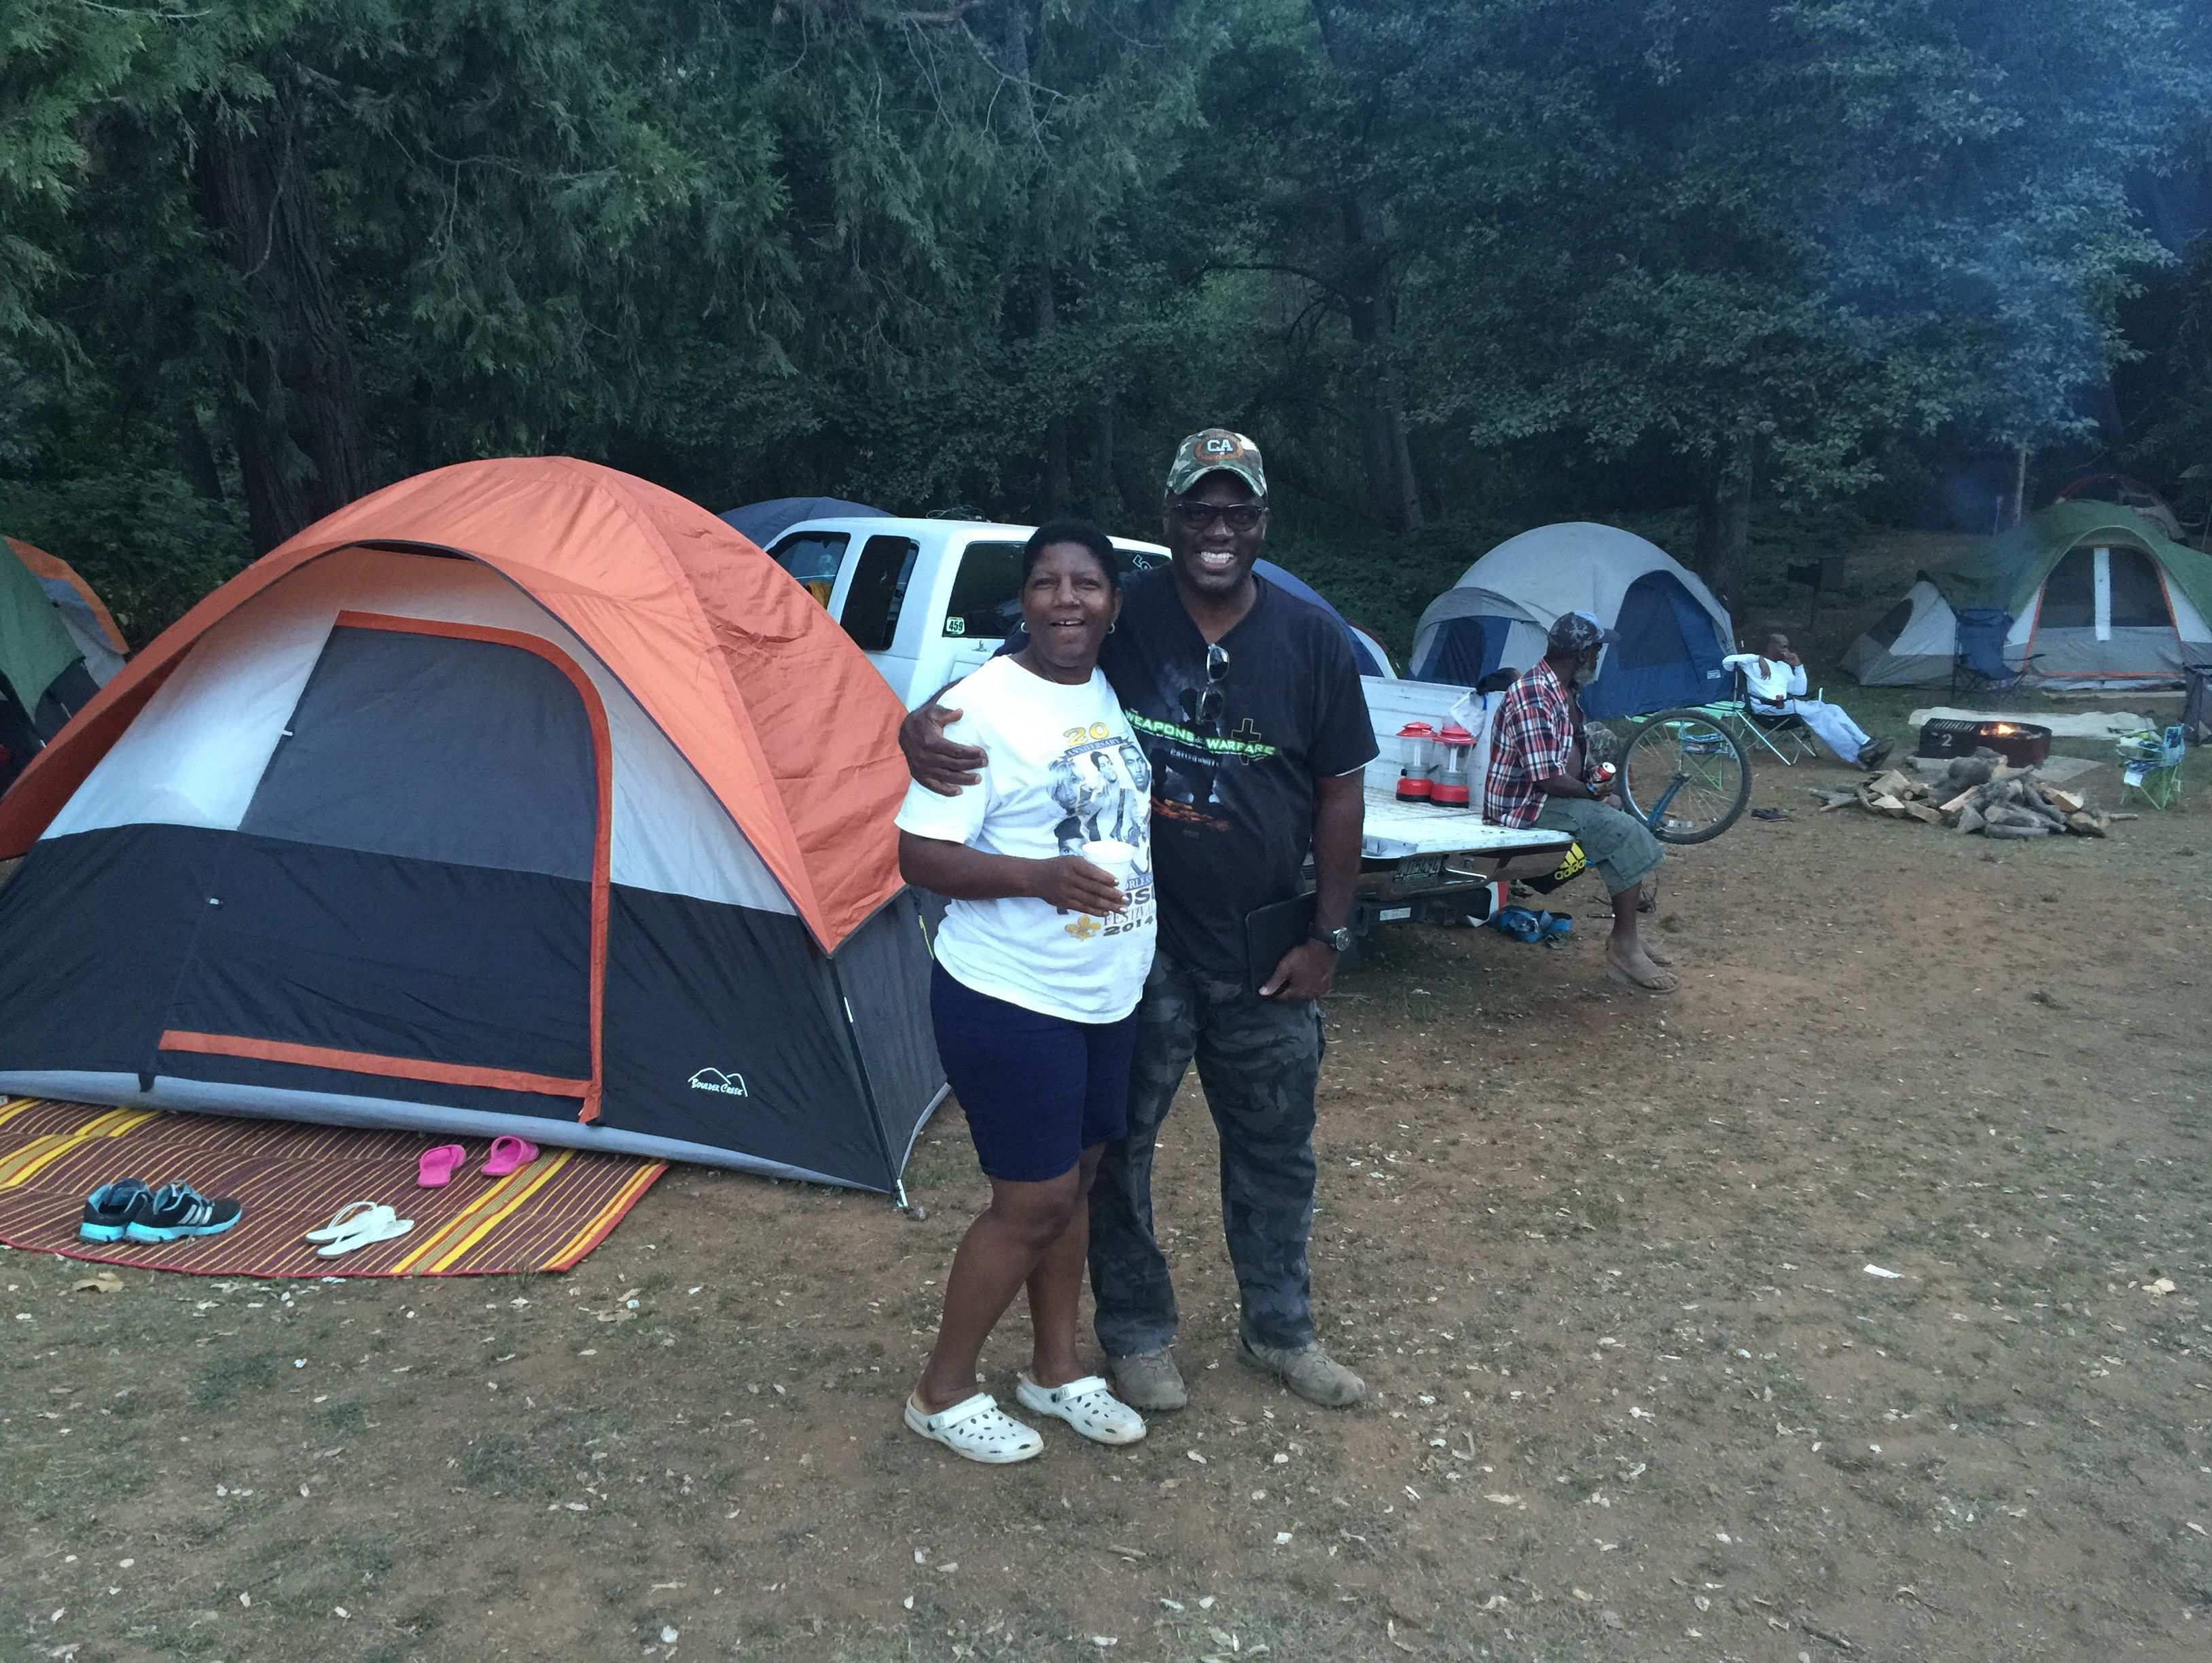 Members of a family gathering at Greenhorn Campground